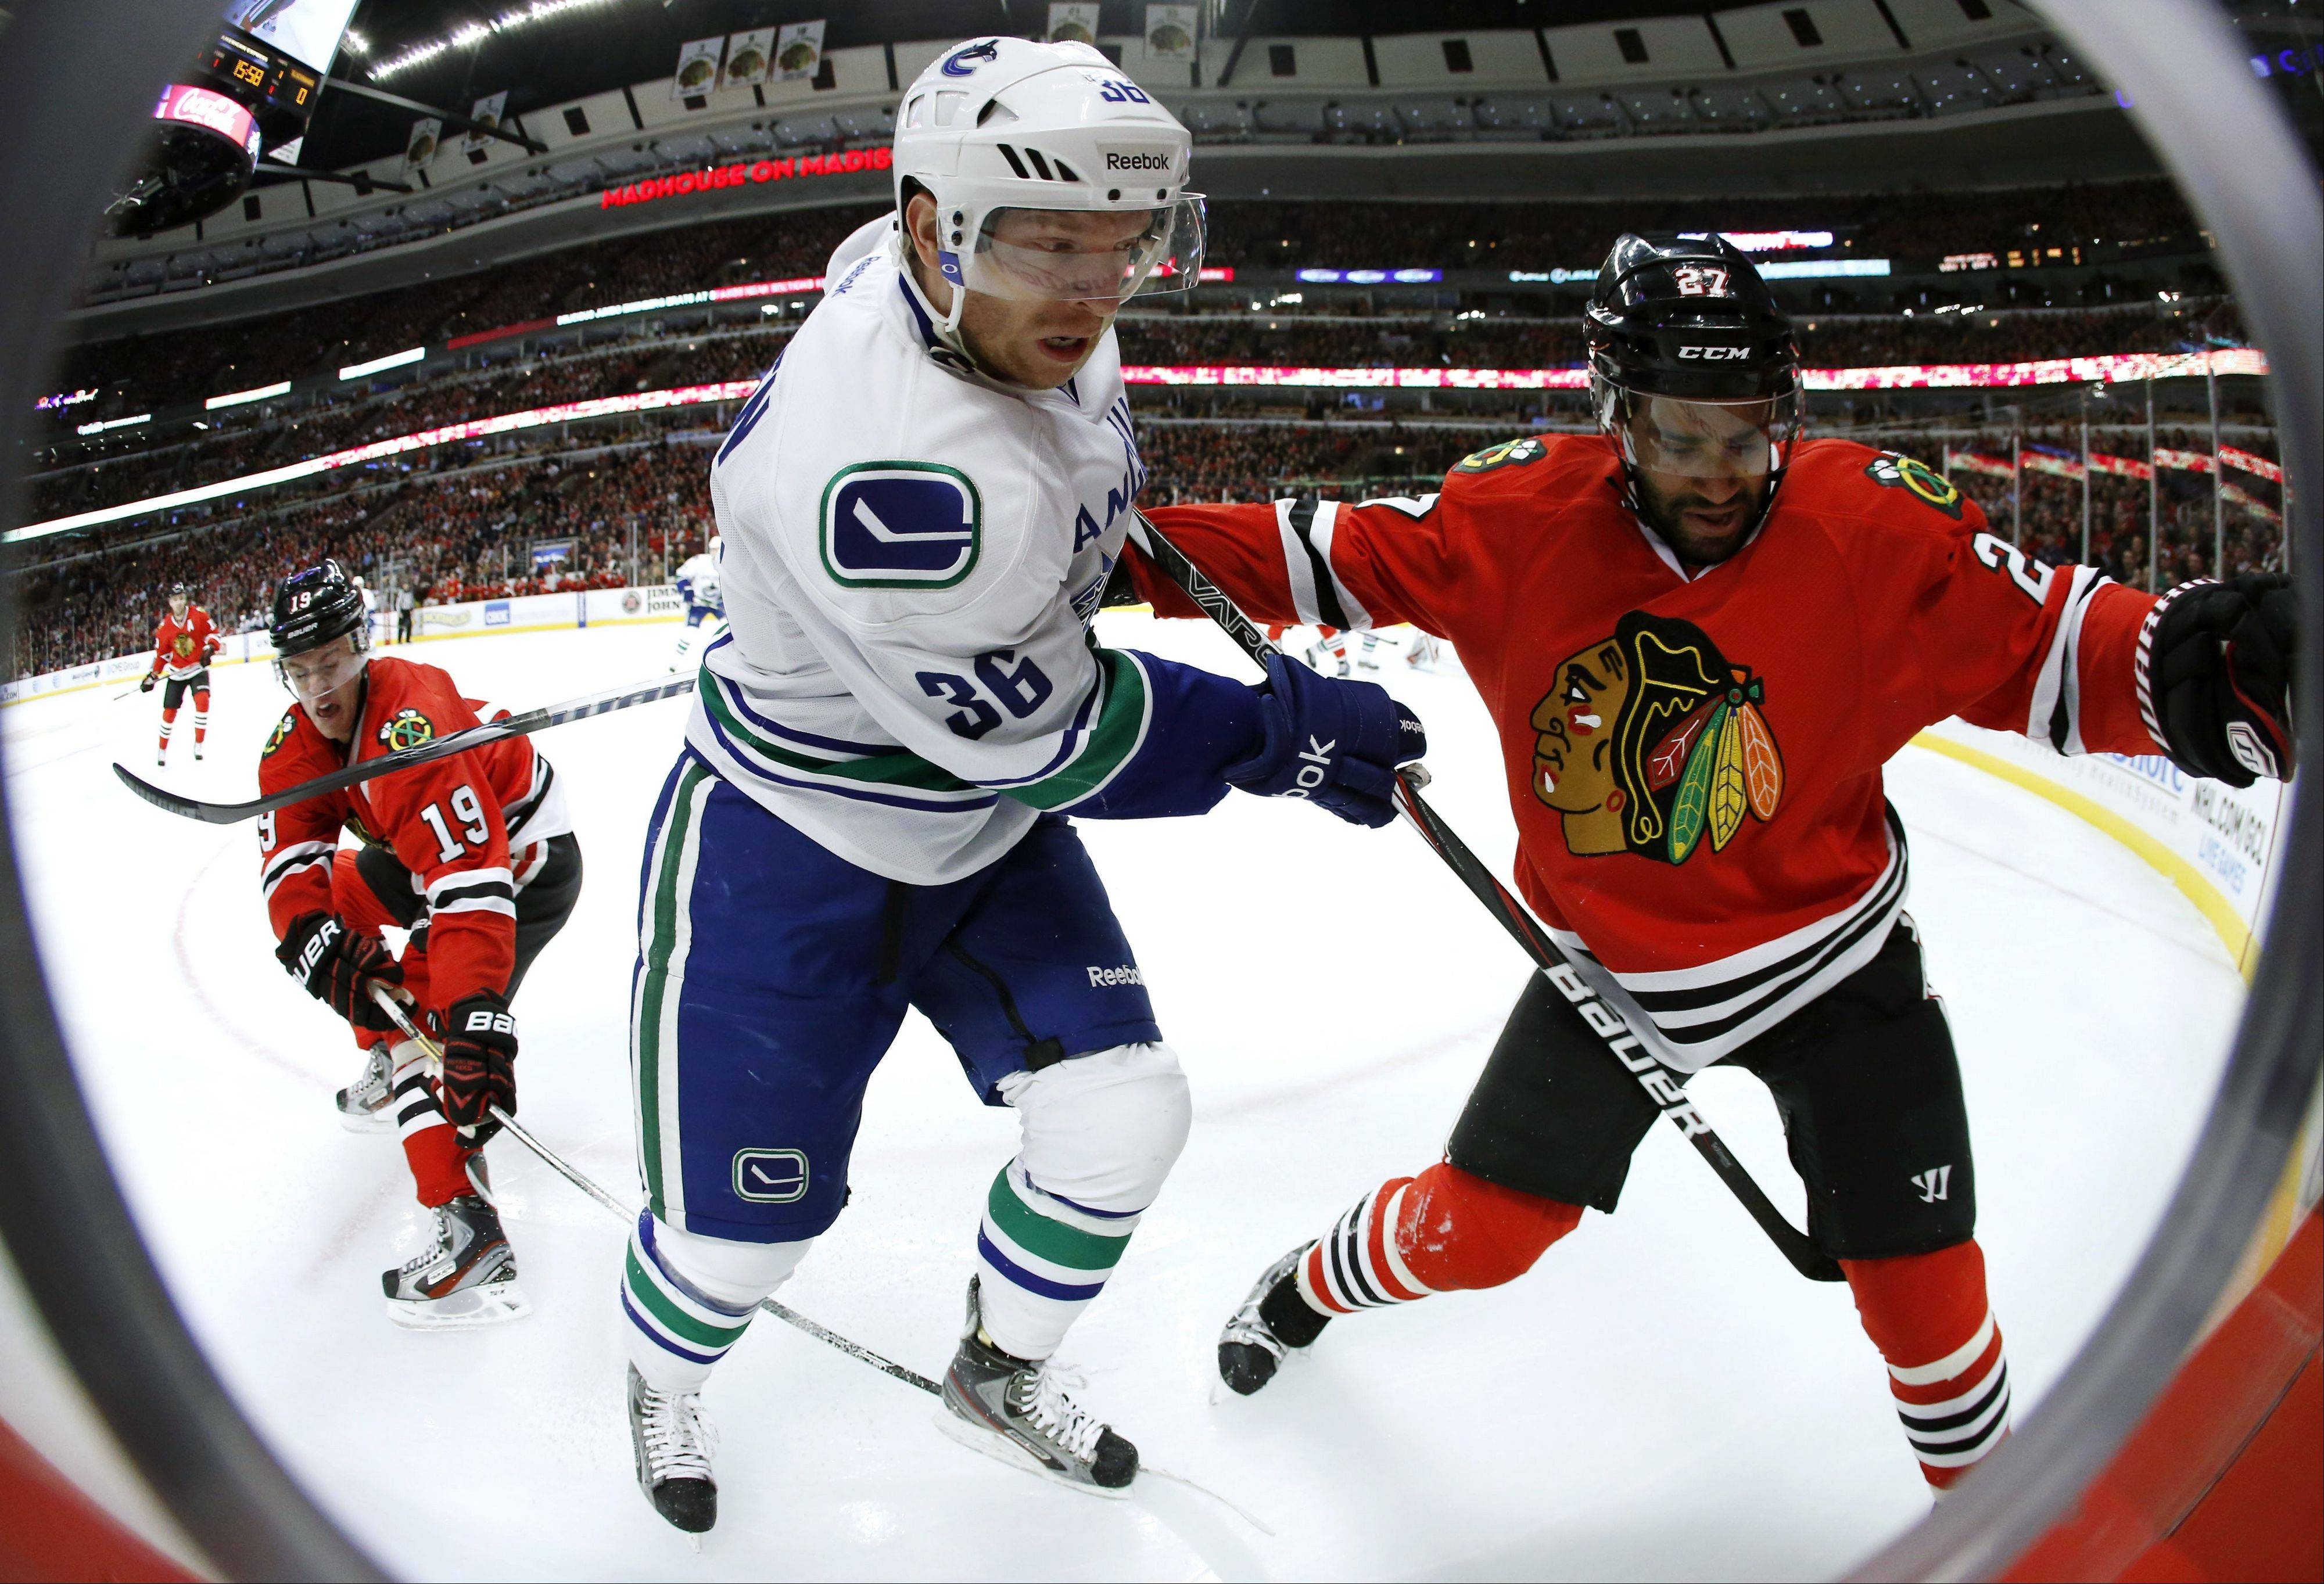 In this photo made using a fisheye lens, Vancouver Canucks right wing Jannik Hansen battles Chicago Blackhawks defenseman Johnny Oduya for a loose puck as Chicago Blackhawks' Jonathan Toews enters the play during the first period.